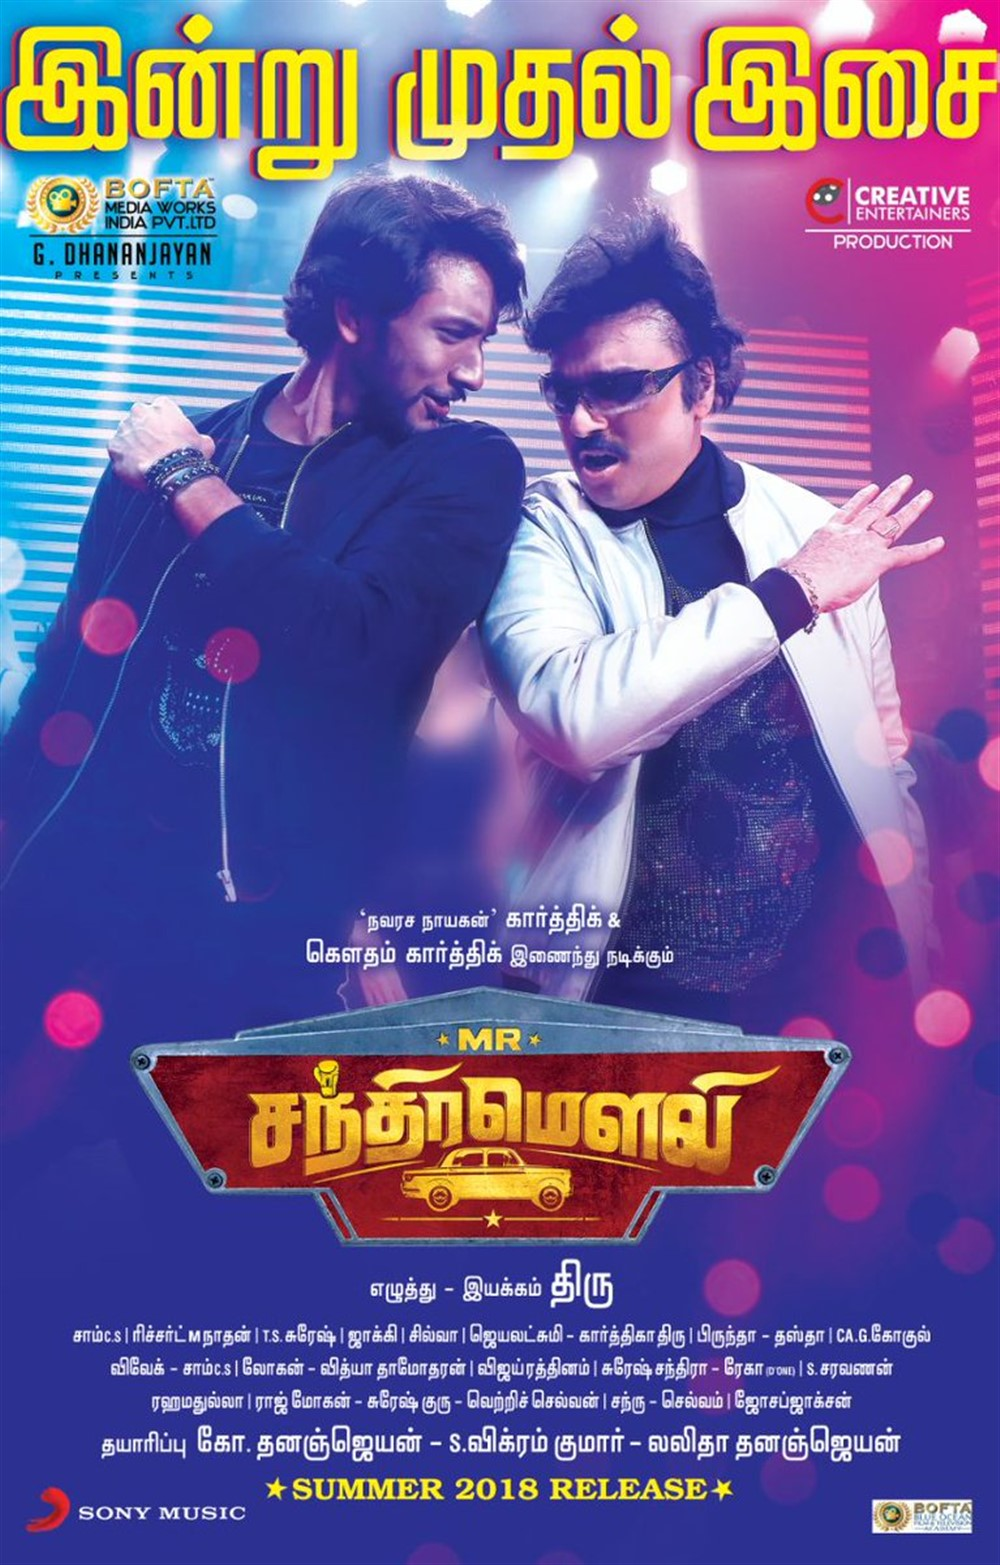 Gautham, Karthik in Mr Chandramouli Audio Release Posters